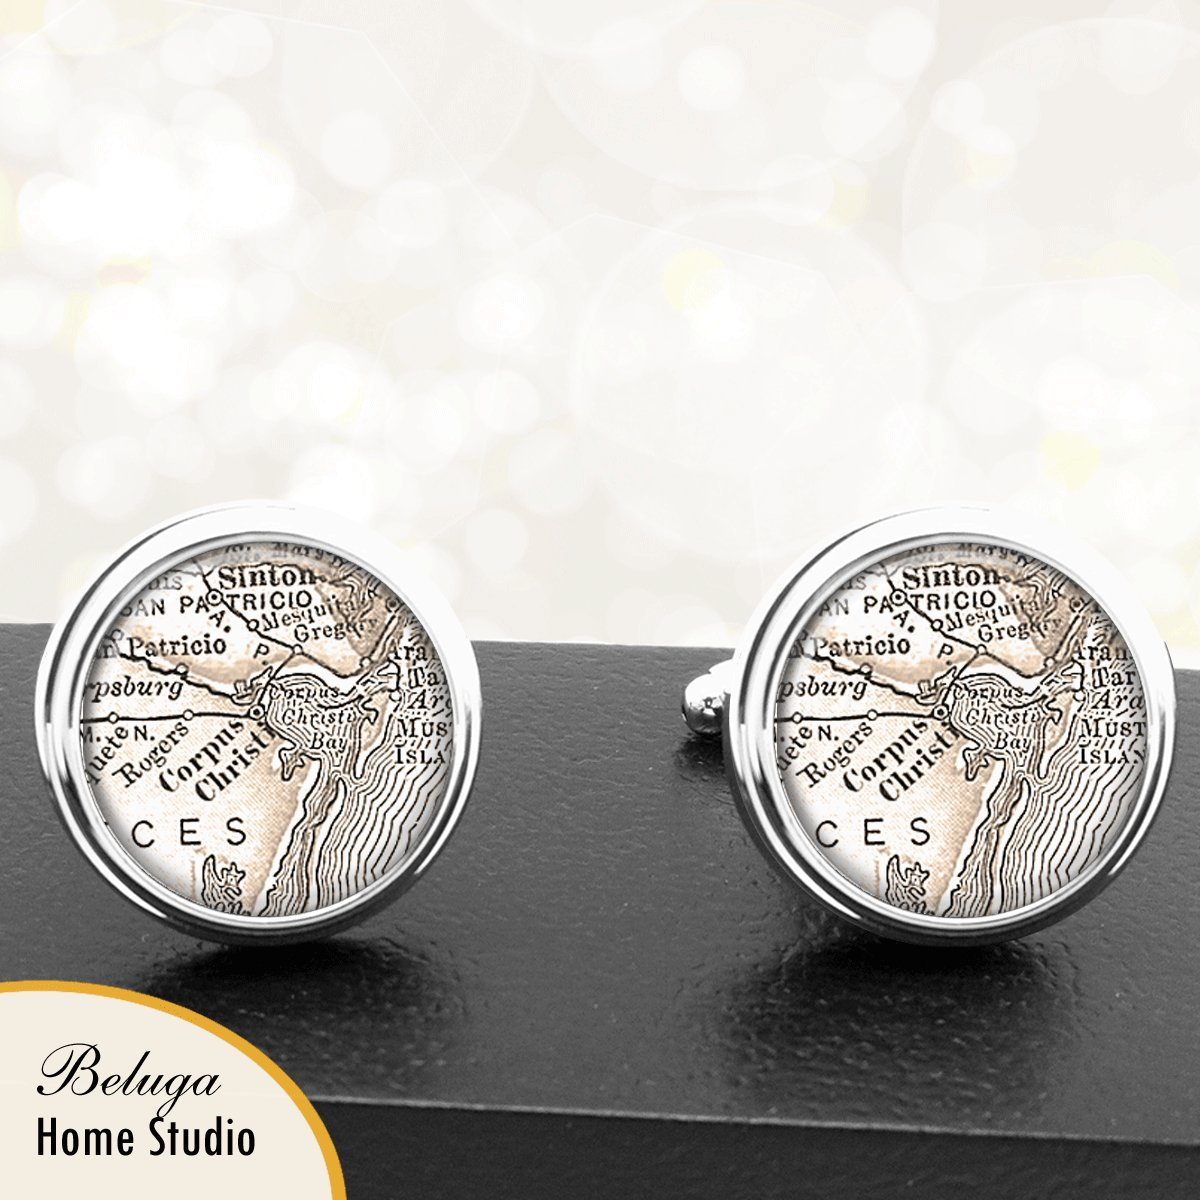 Amazon.com: Corpus Christi TX Map Cufflinks Handmade USA ... on map of lo, map of general motors, map of vb, map of cr, map of ra, map of le, map of no, map of so, map of gr, map of ge, map of white, map of sa, map of re, map of kawasaki, map of sp, map of tv, map of ta, map of international, map of ch, map of pc,